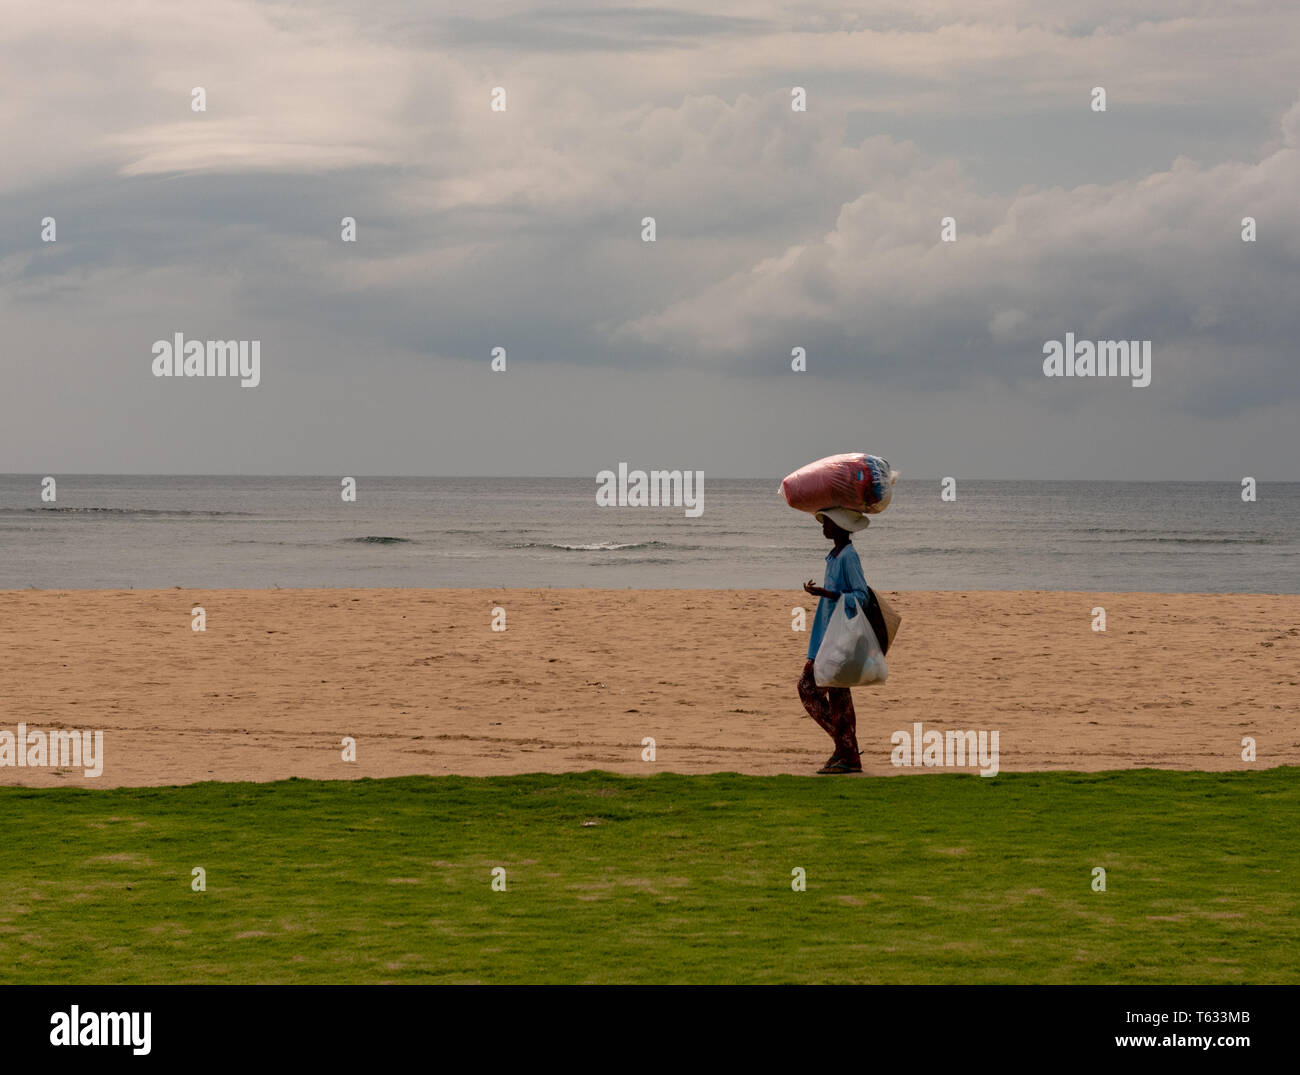 Bali, Indonesia -- February 29, 2016. An Indonesian woman carries goods in the traditional way as she walks on the beach. - Stock Image